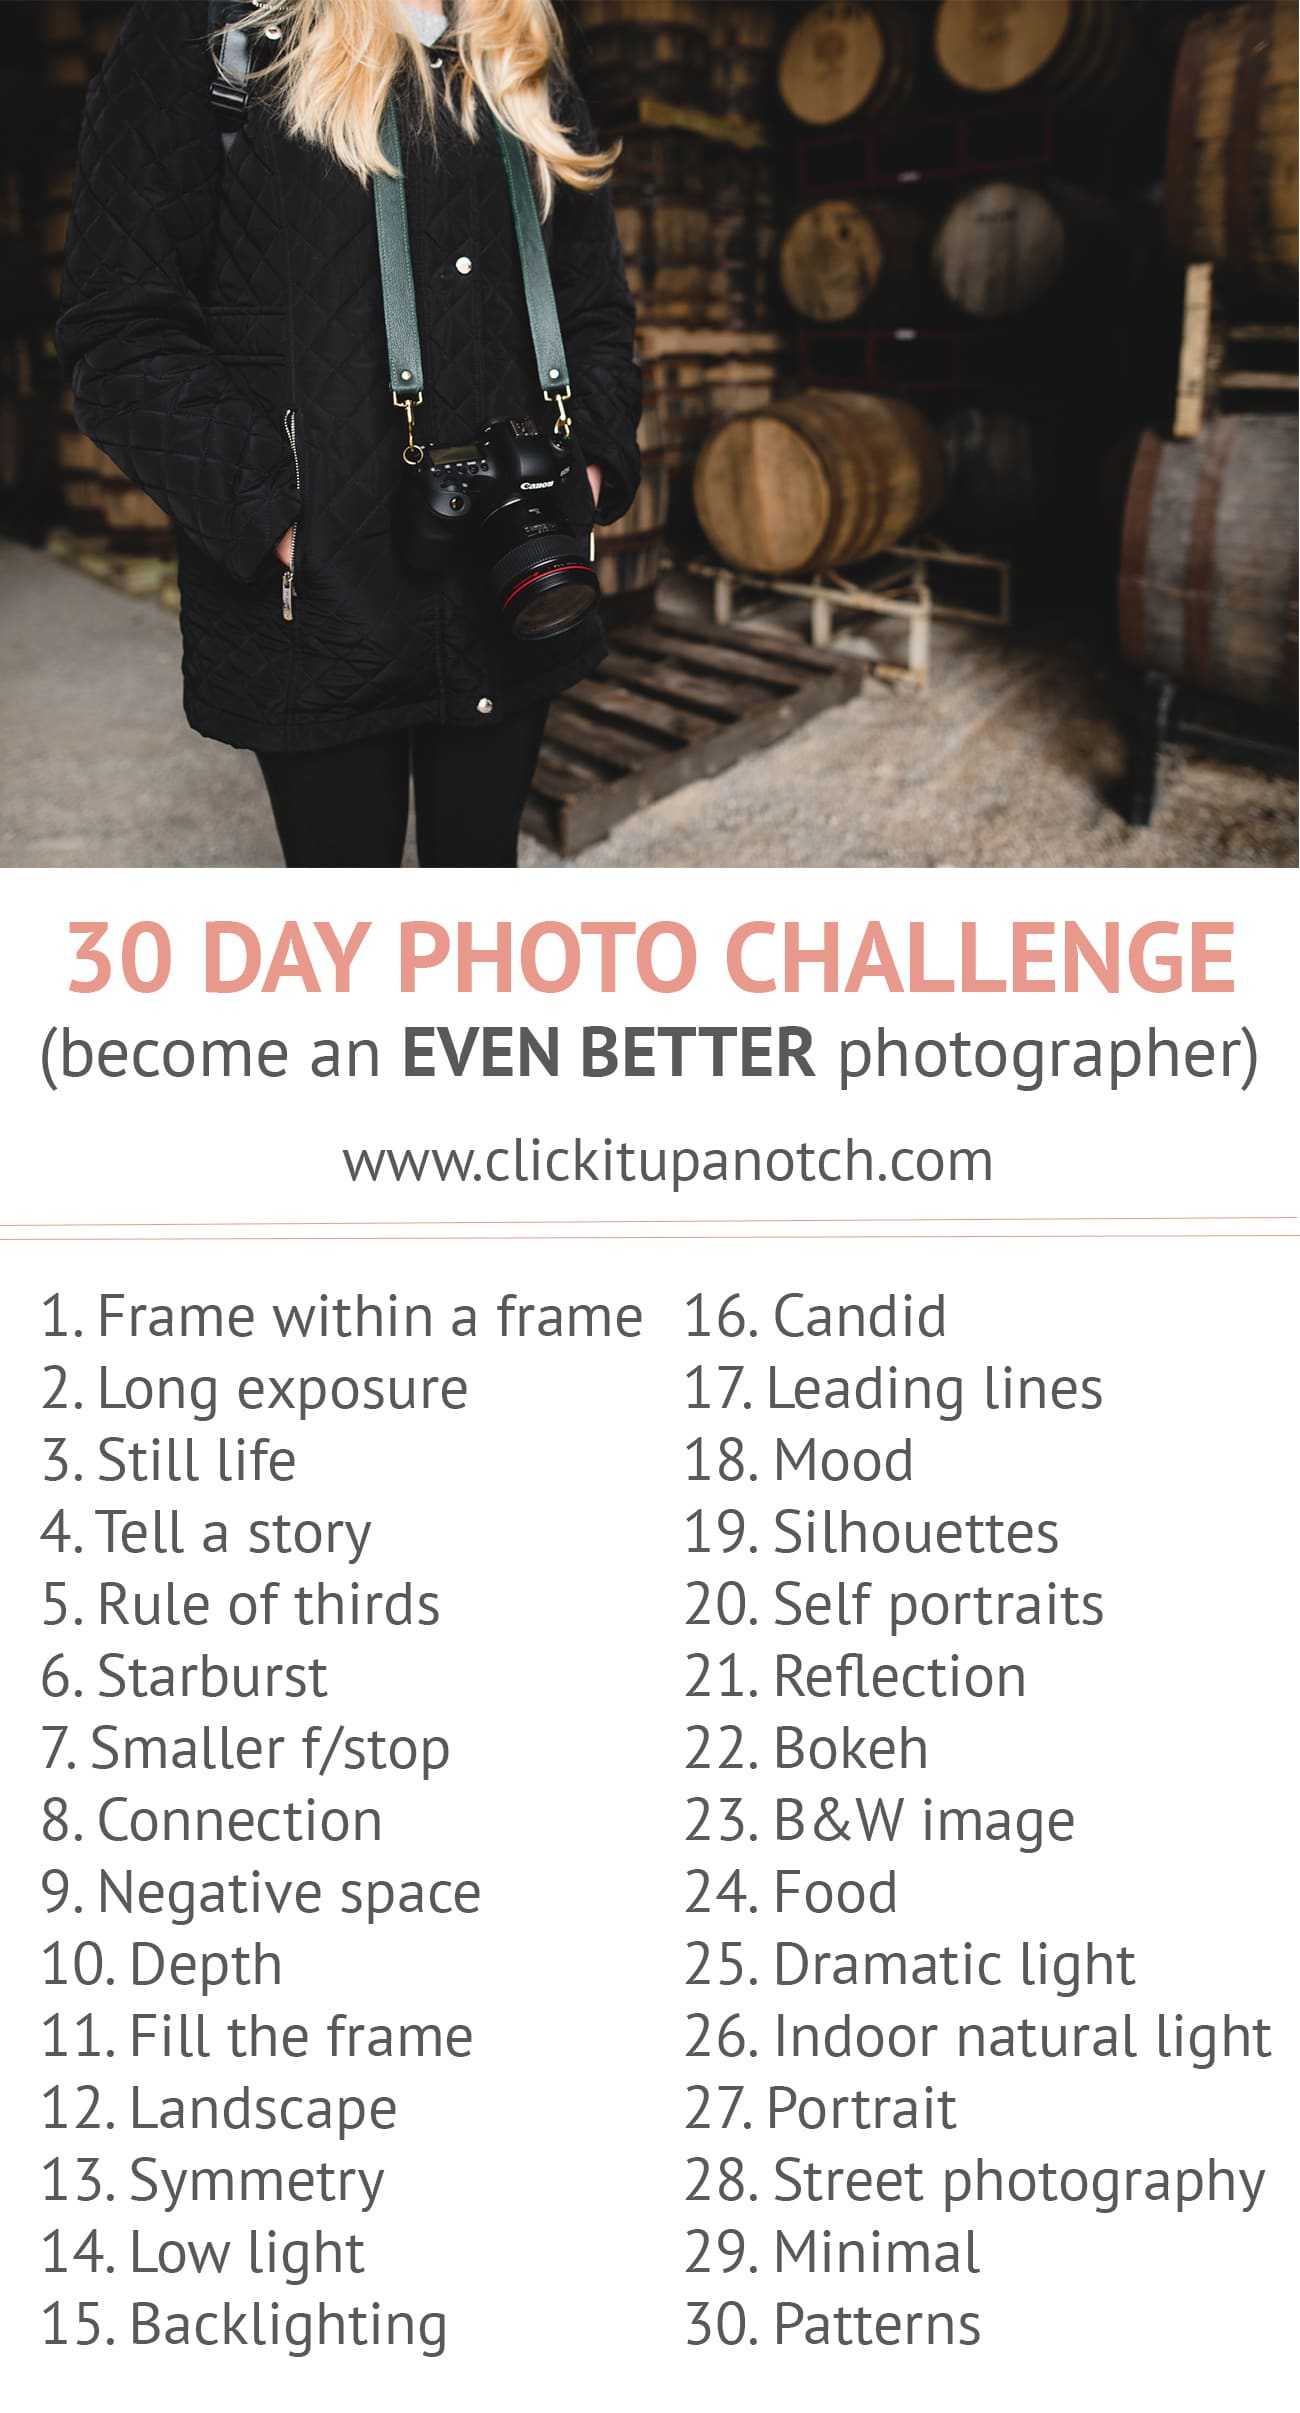 30 day photo challenge prompts